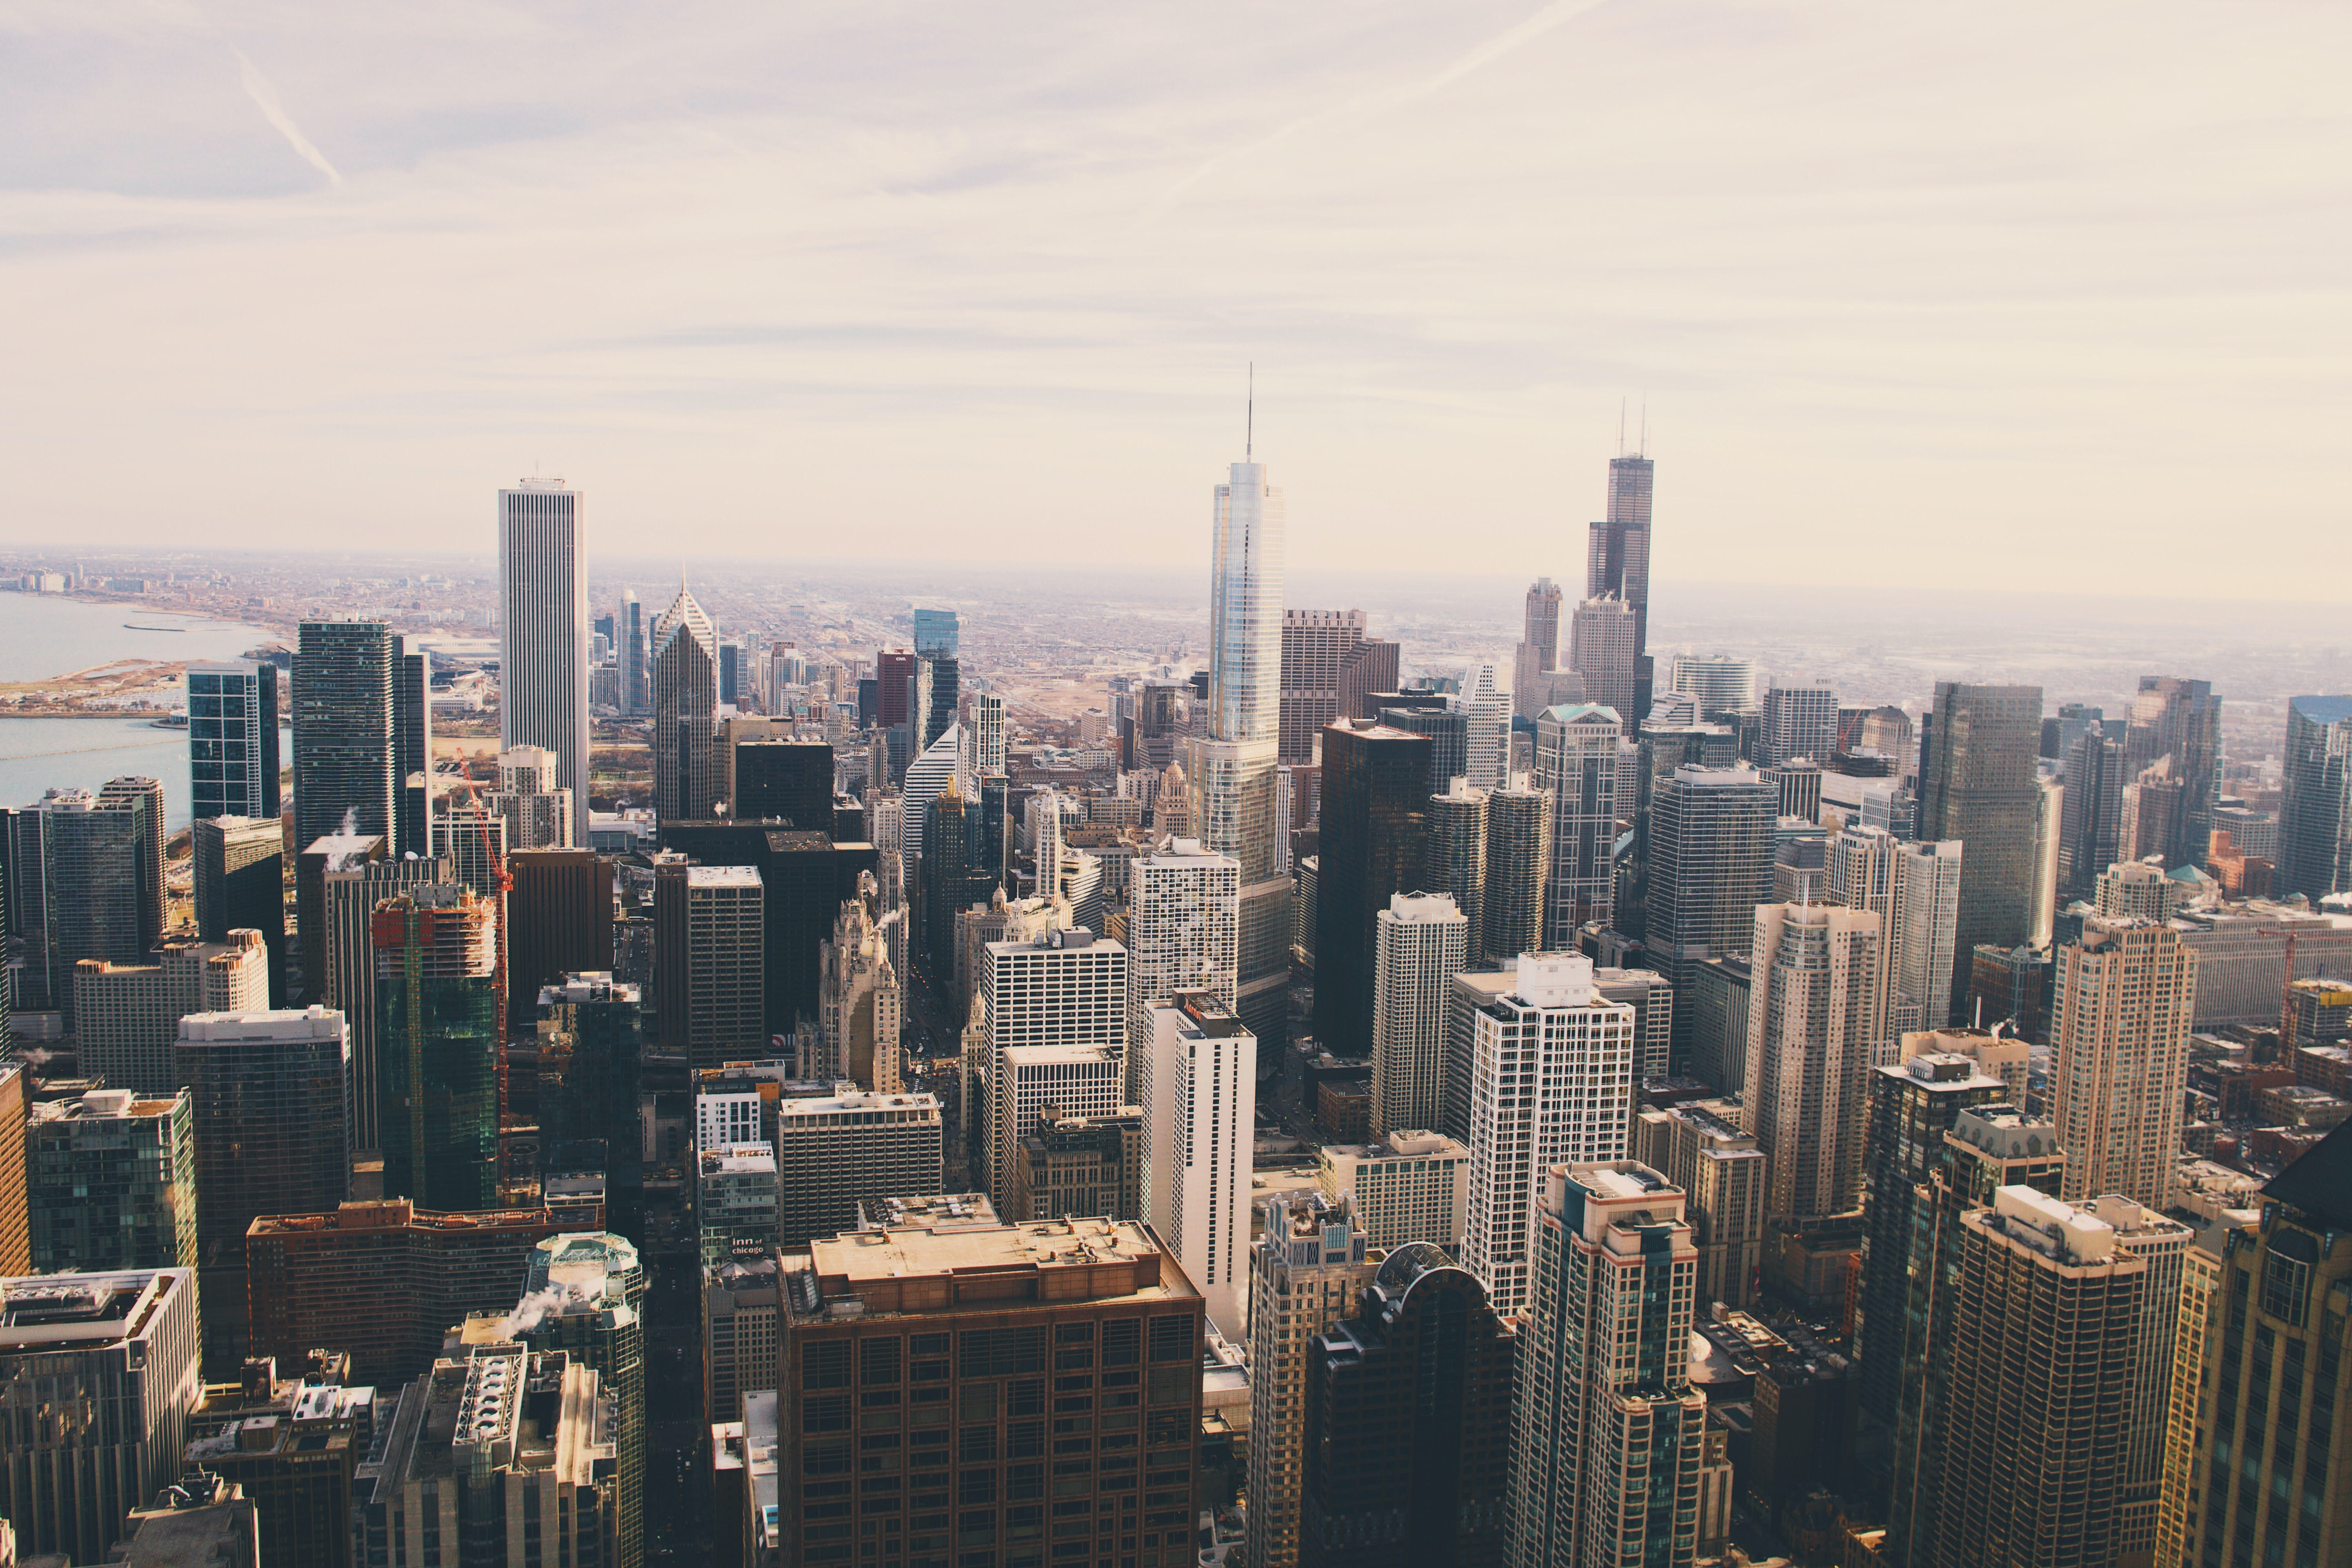 Skyscrapers in the skyline of Chicago